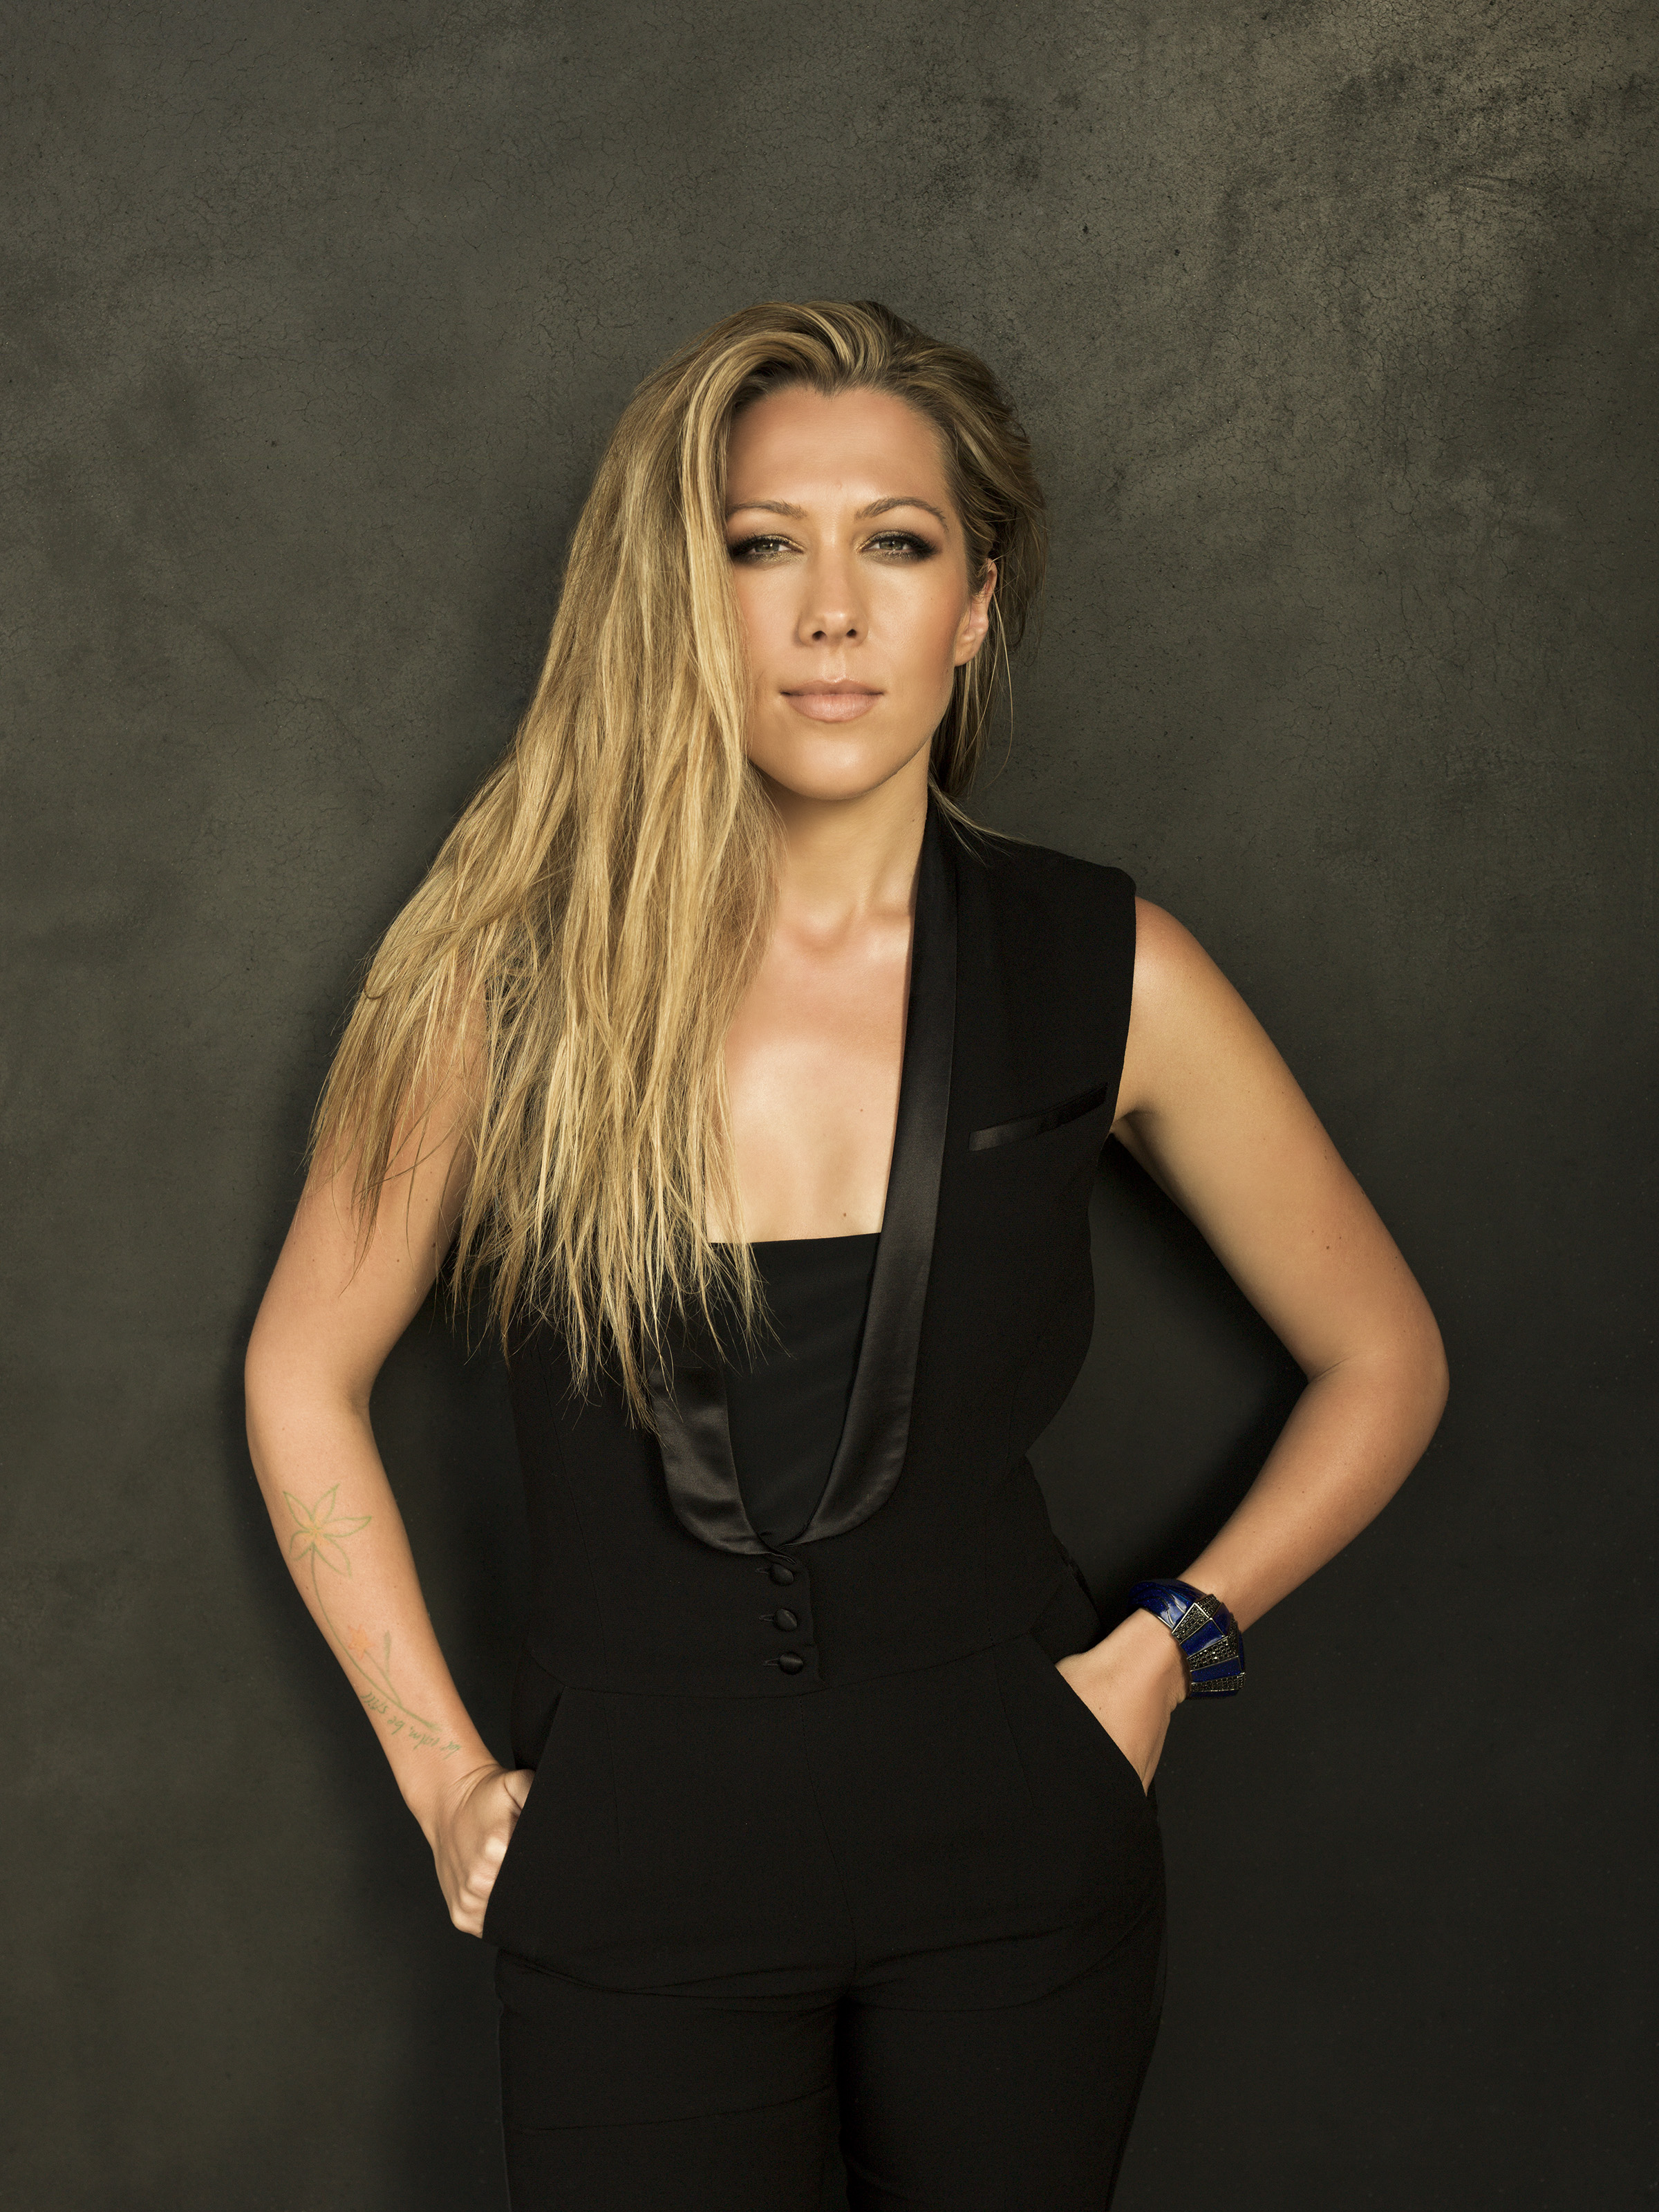 Colbie Caillat and Gavin DeGraw Team Up for New Single